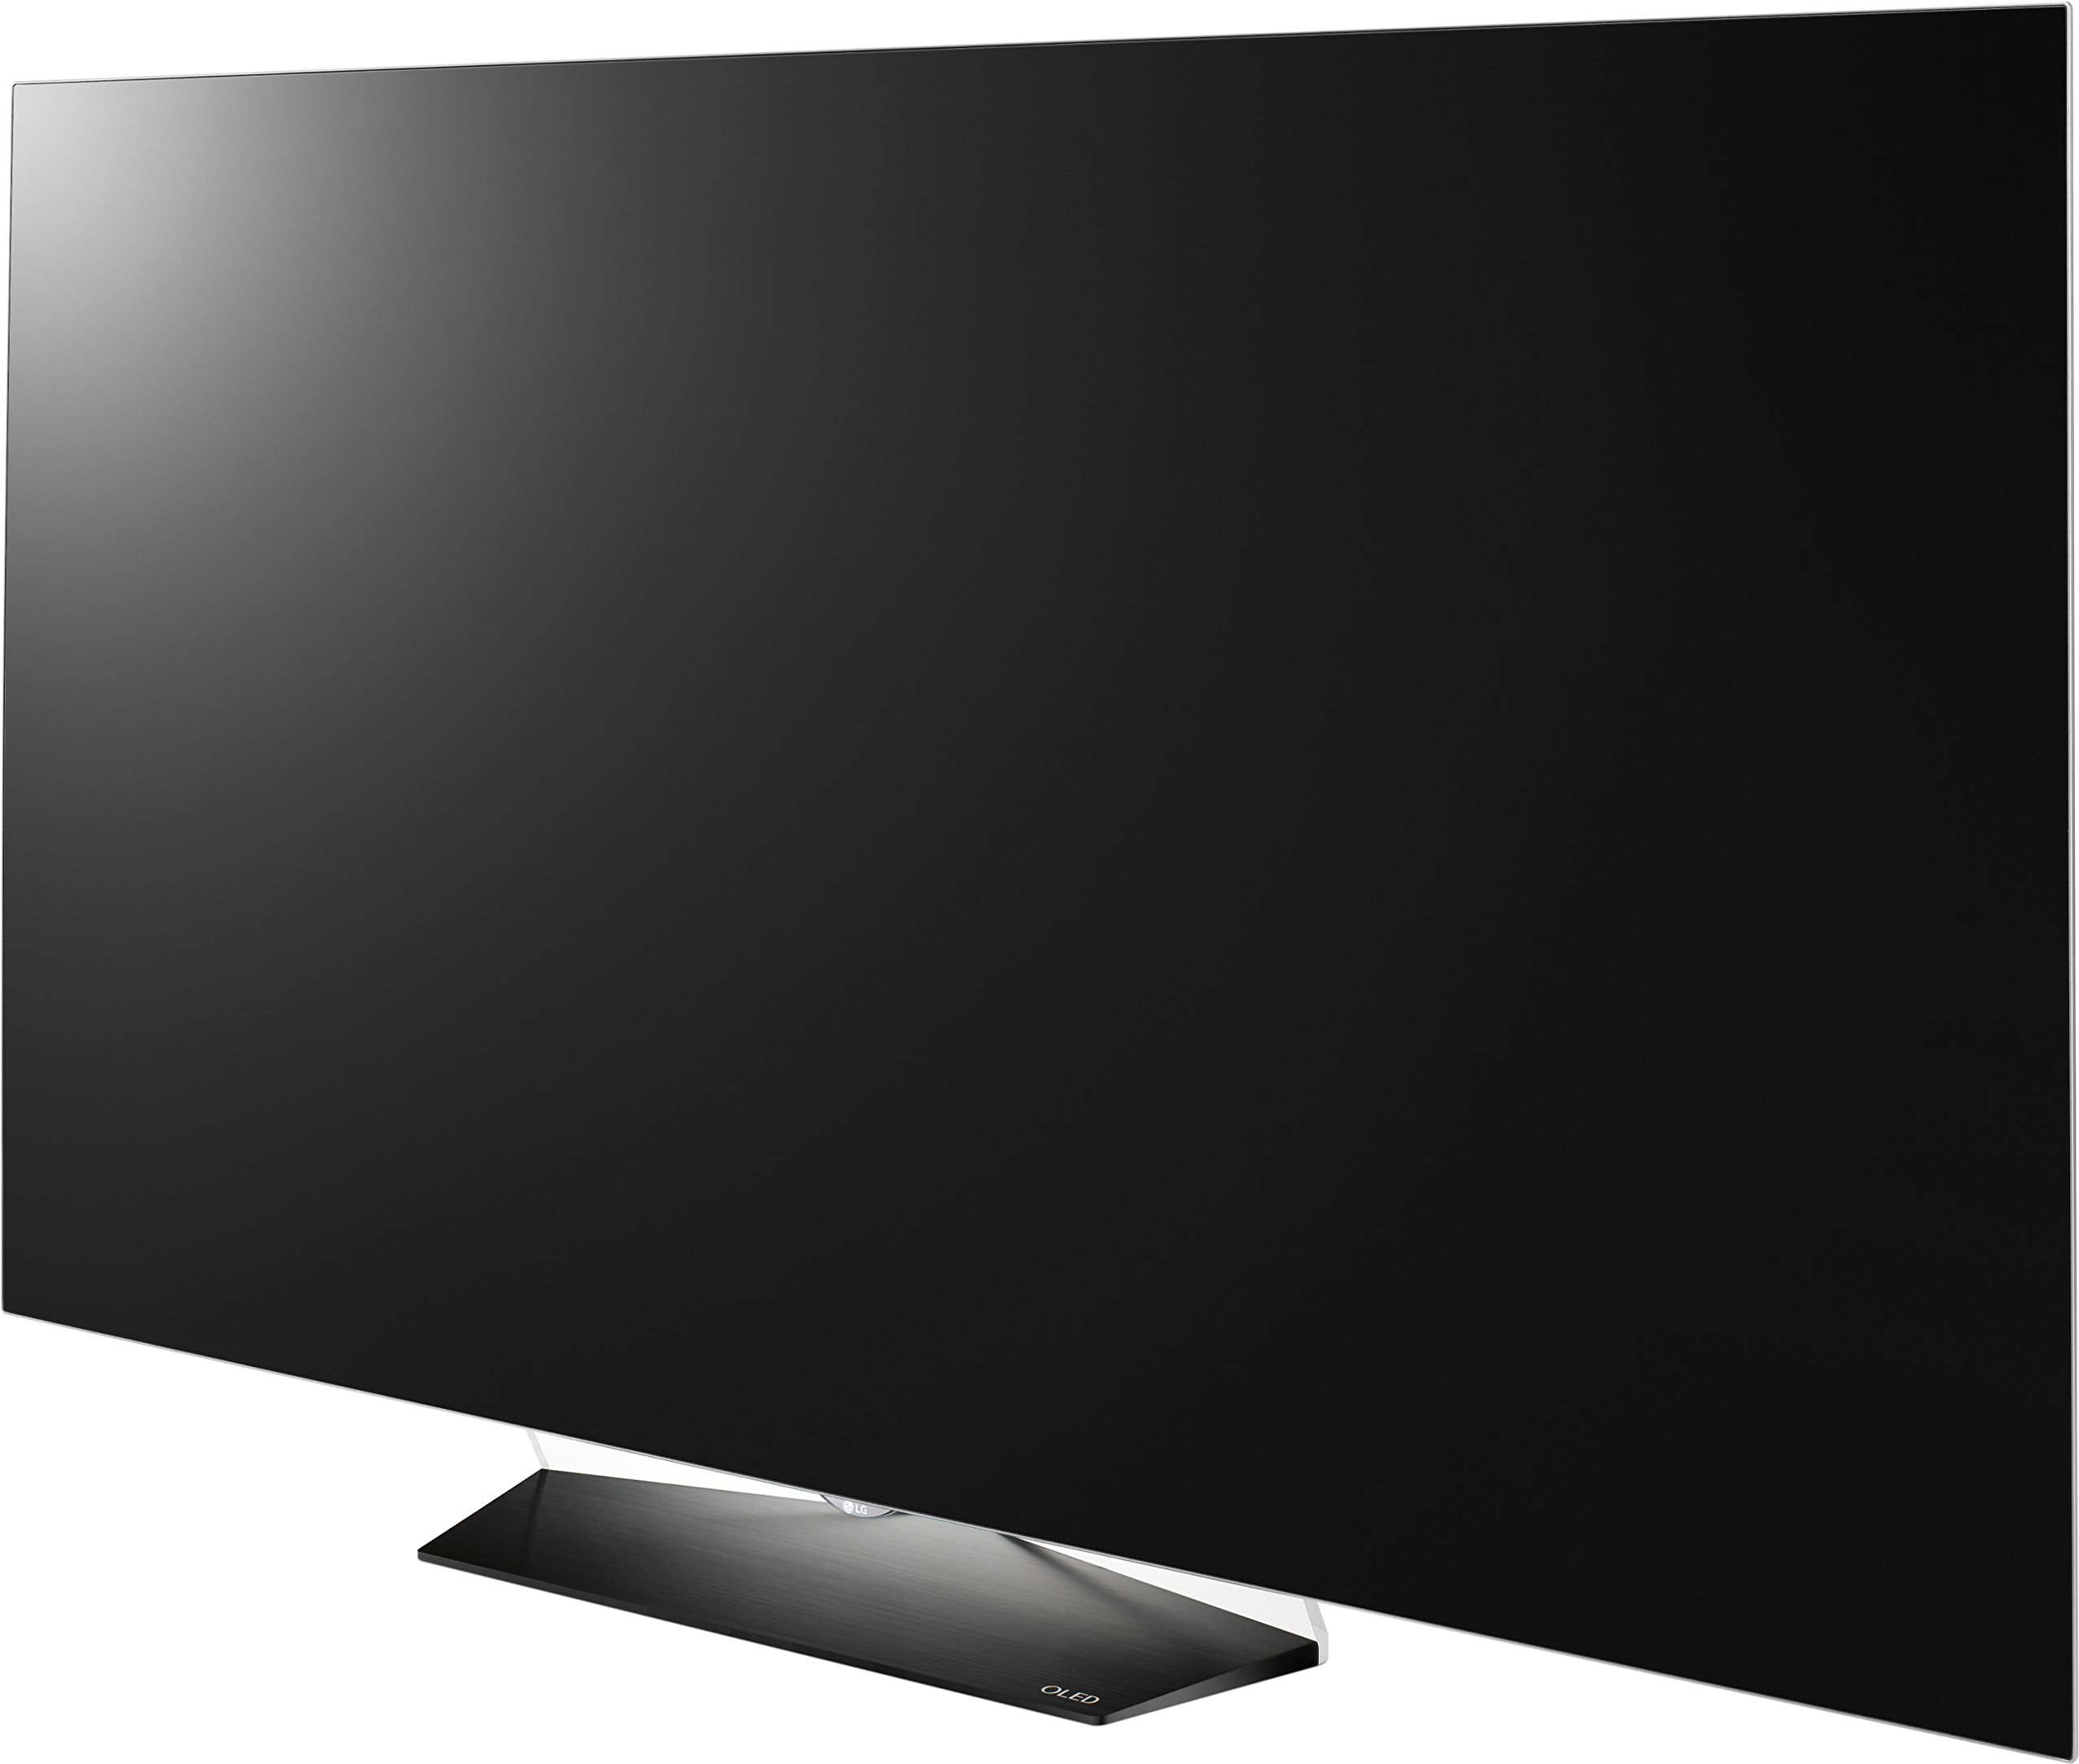 LG OLED 65OLEDB6D - Televisor de 164 cm (resolución Ultra HD, Doble-Triple sintonizador, Smart TV, 3.840 x 2.160, HDR, Sonido de 40 W y Mando Magic Remote): Amazon.es: Electrónica